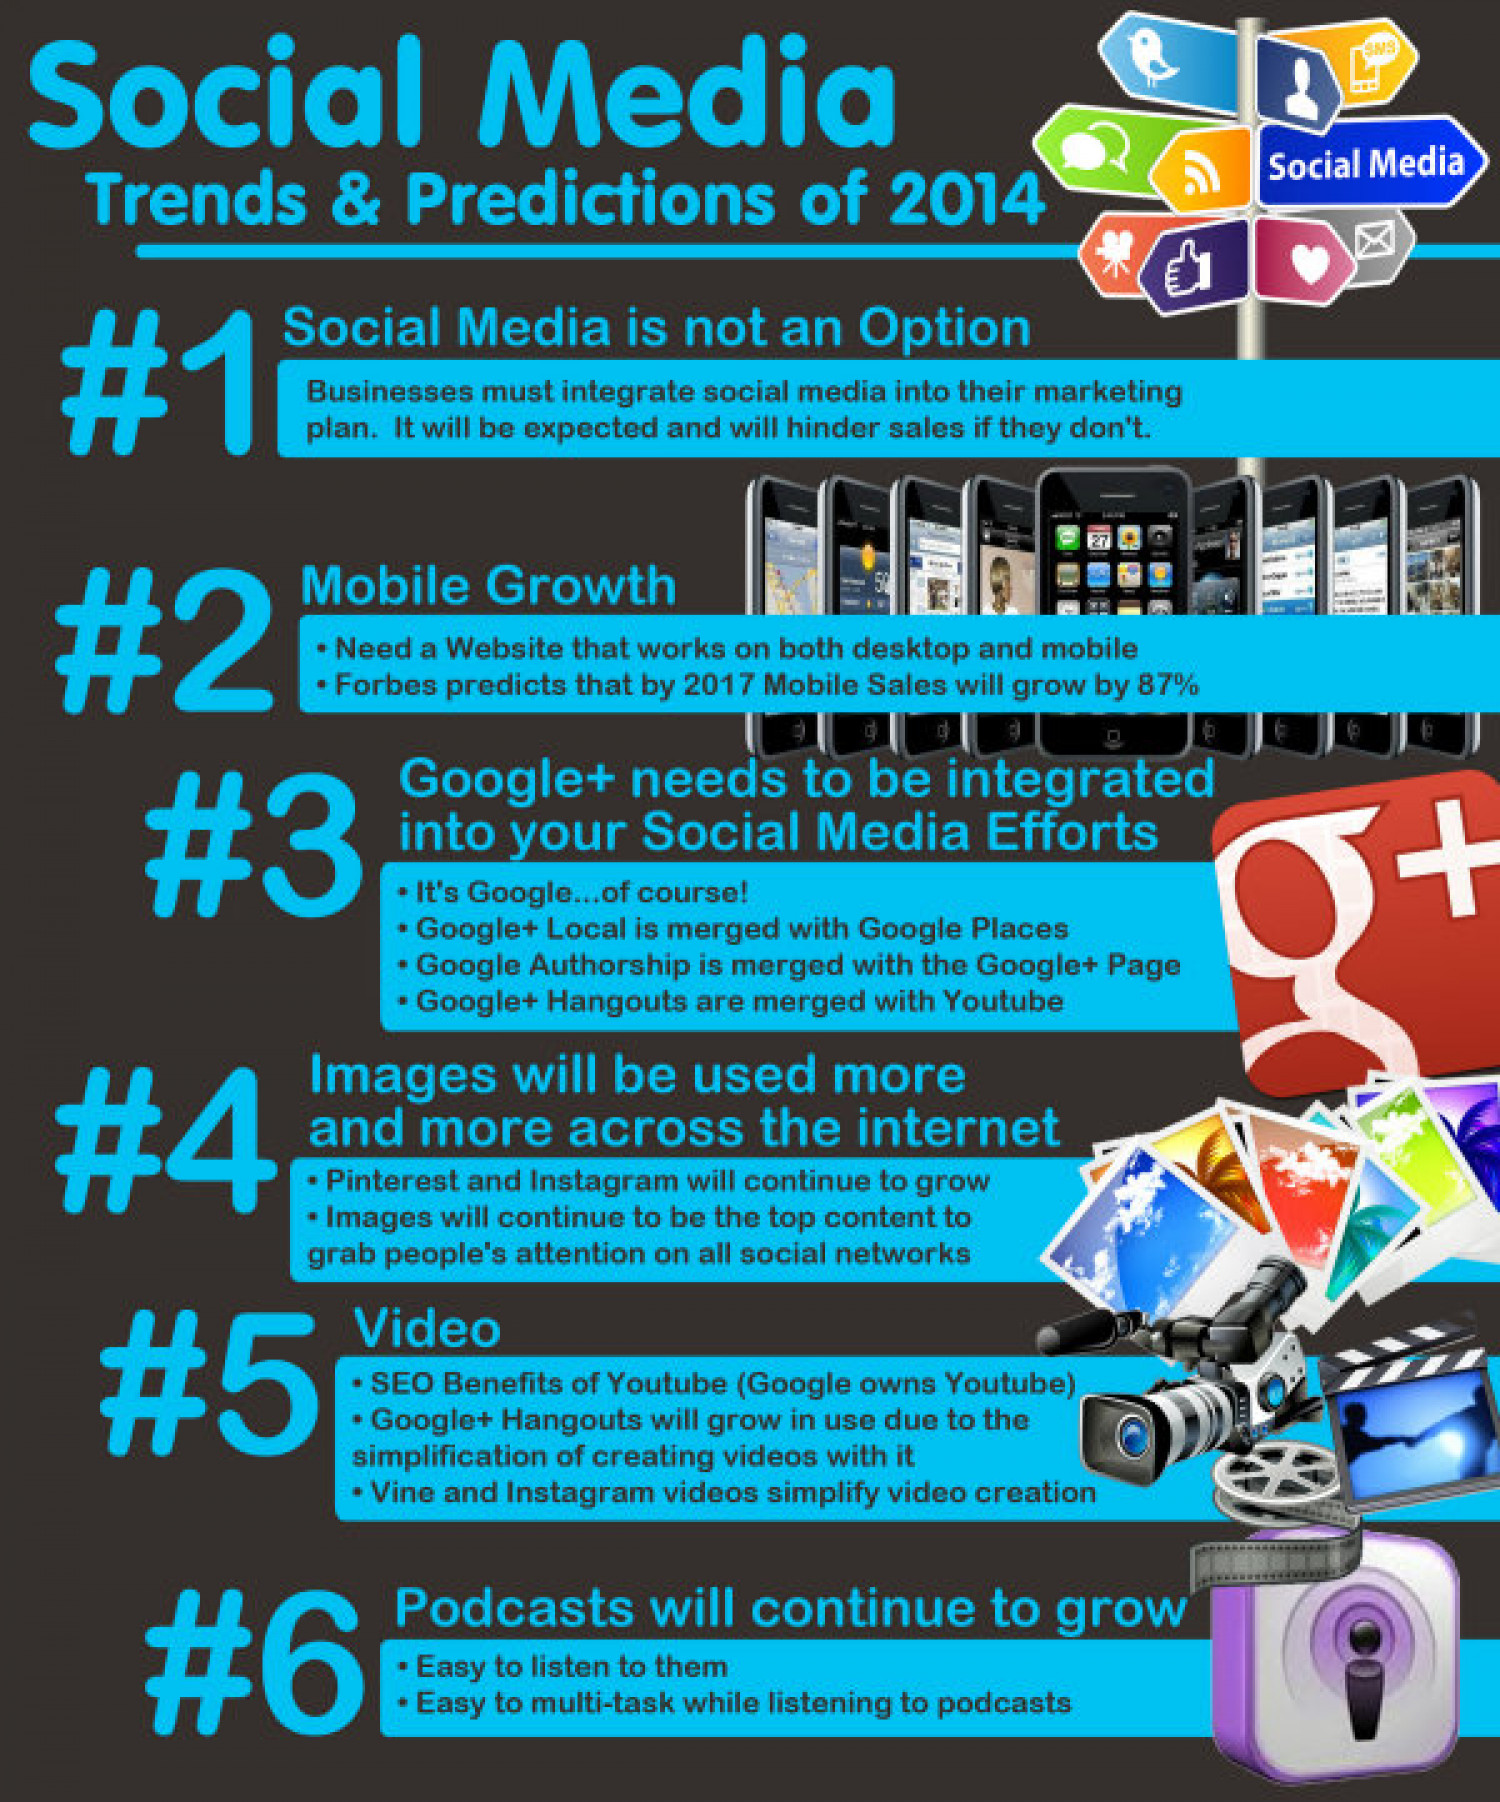 Social Media Trends & Predictions Of 2014 Infographic